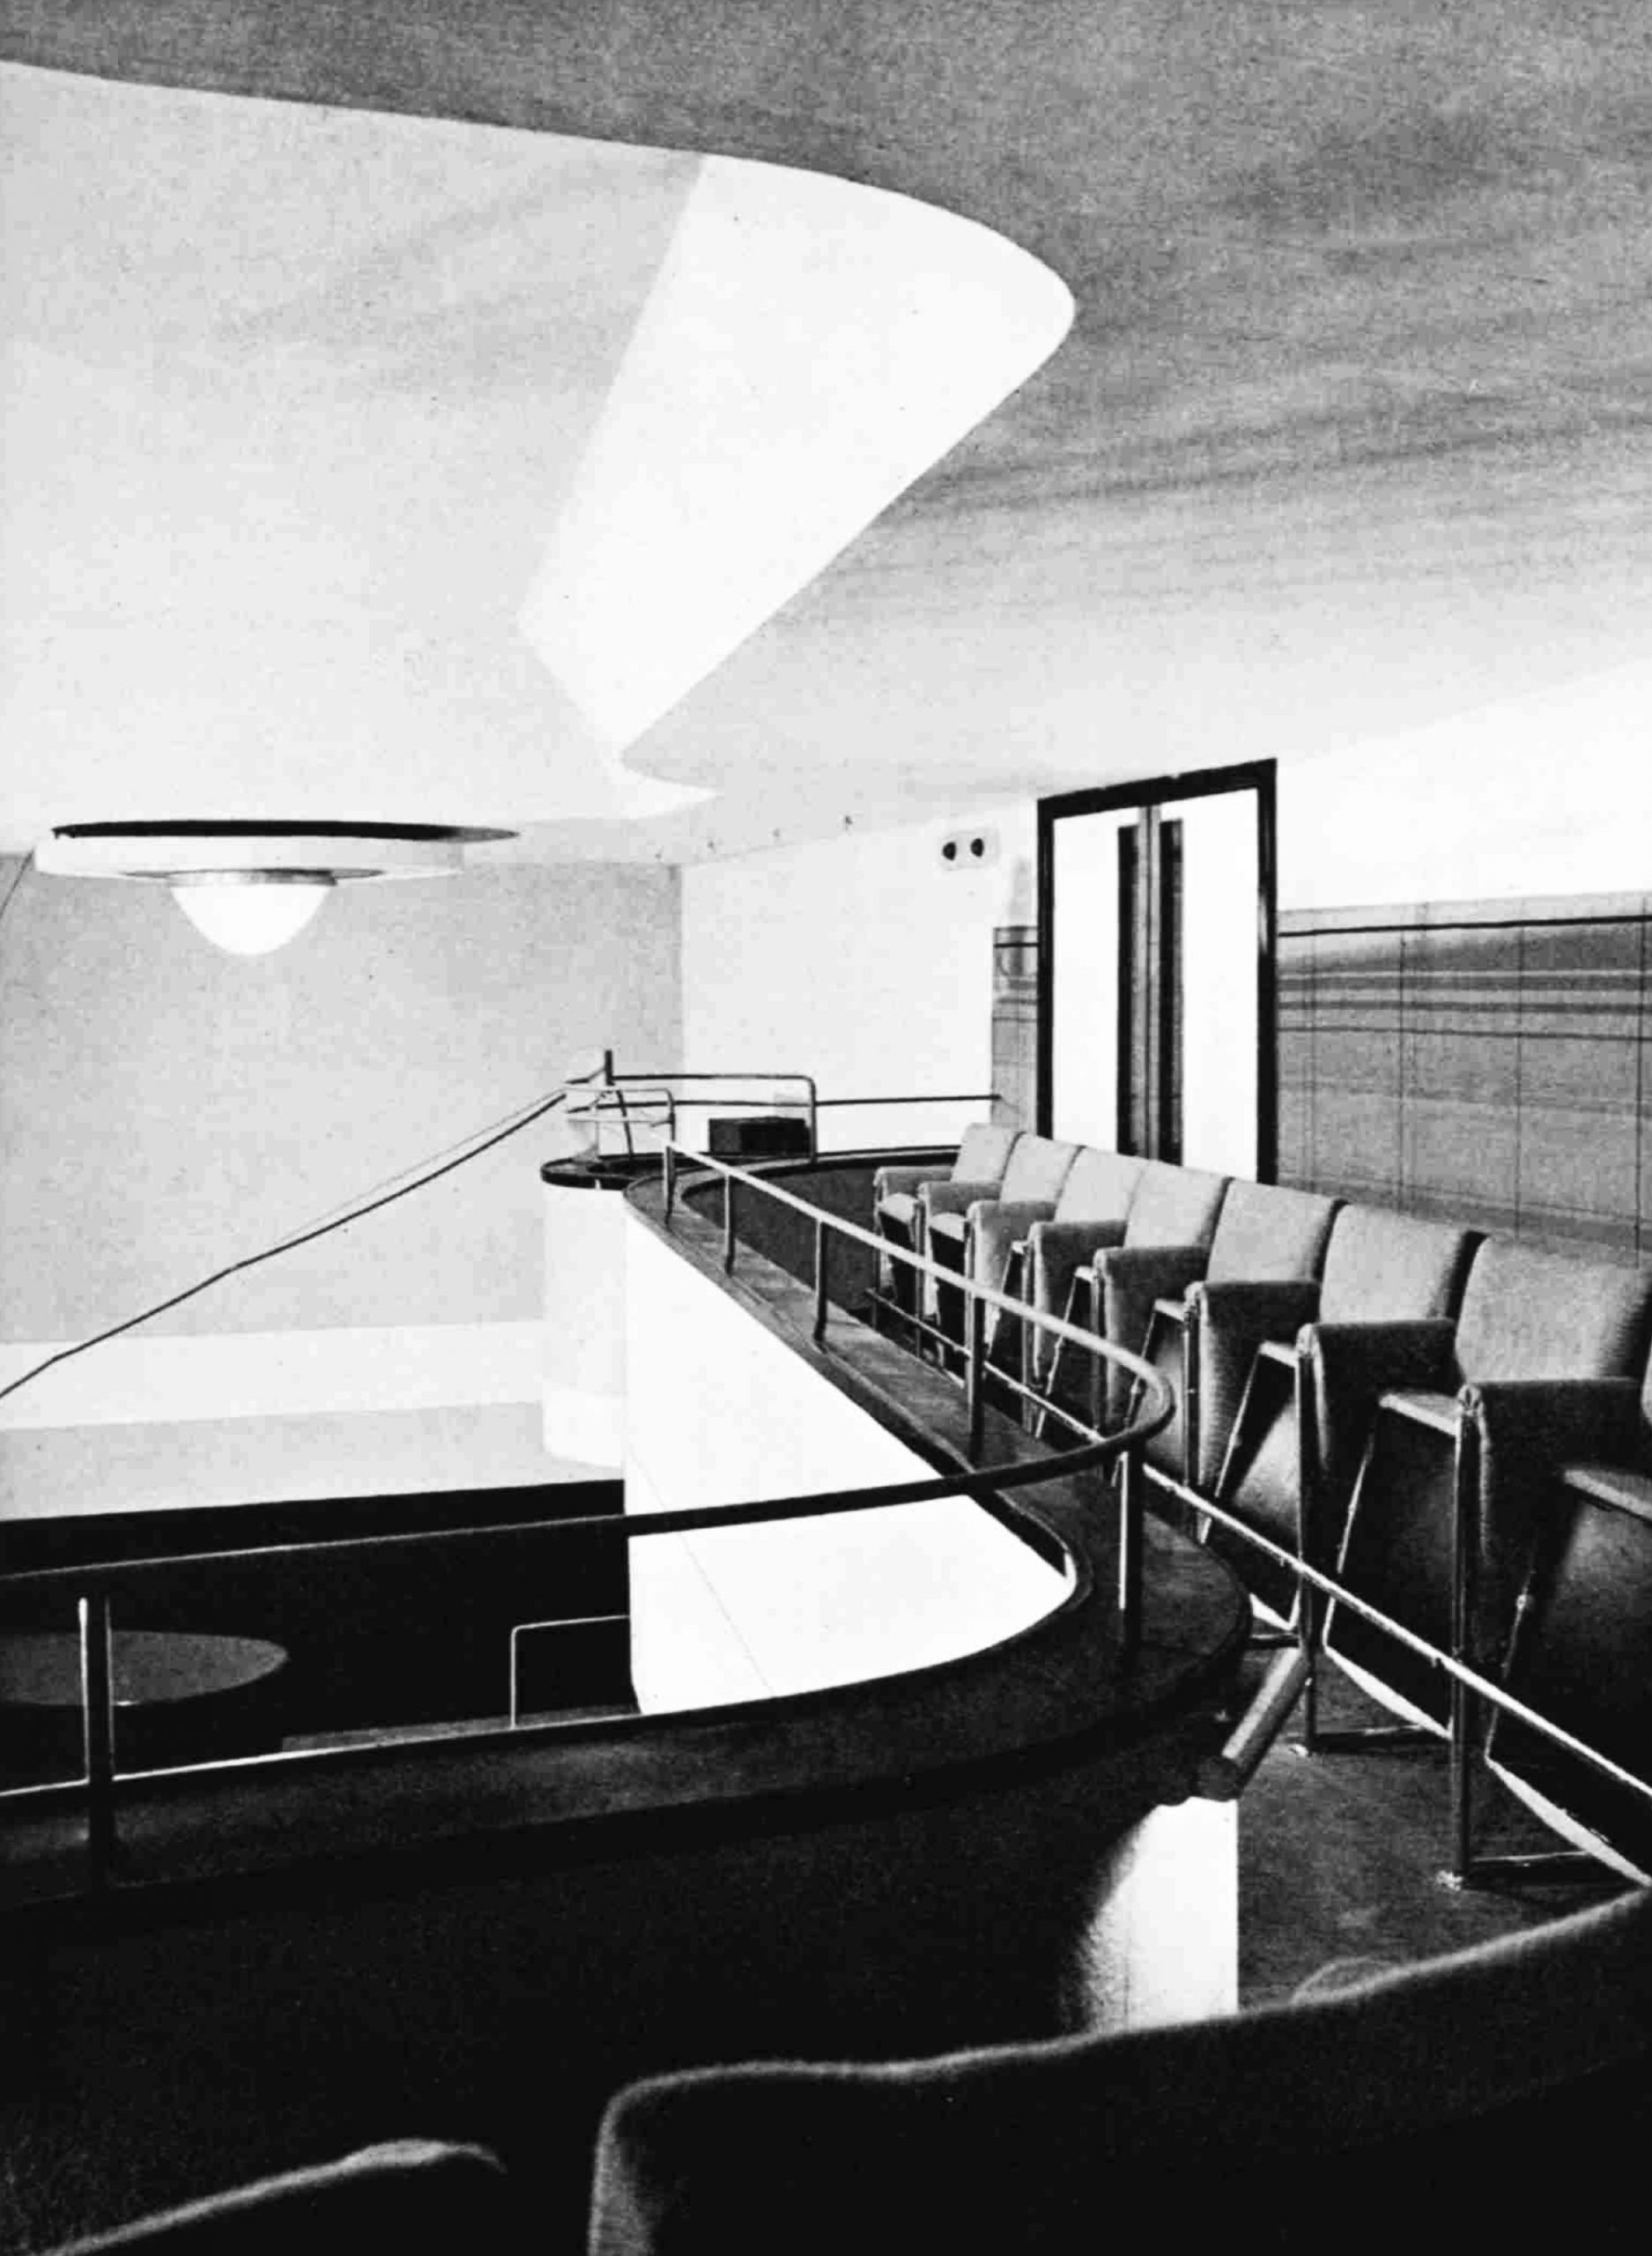 A curved balcony with seats